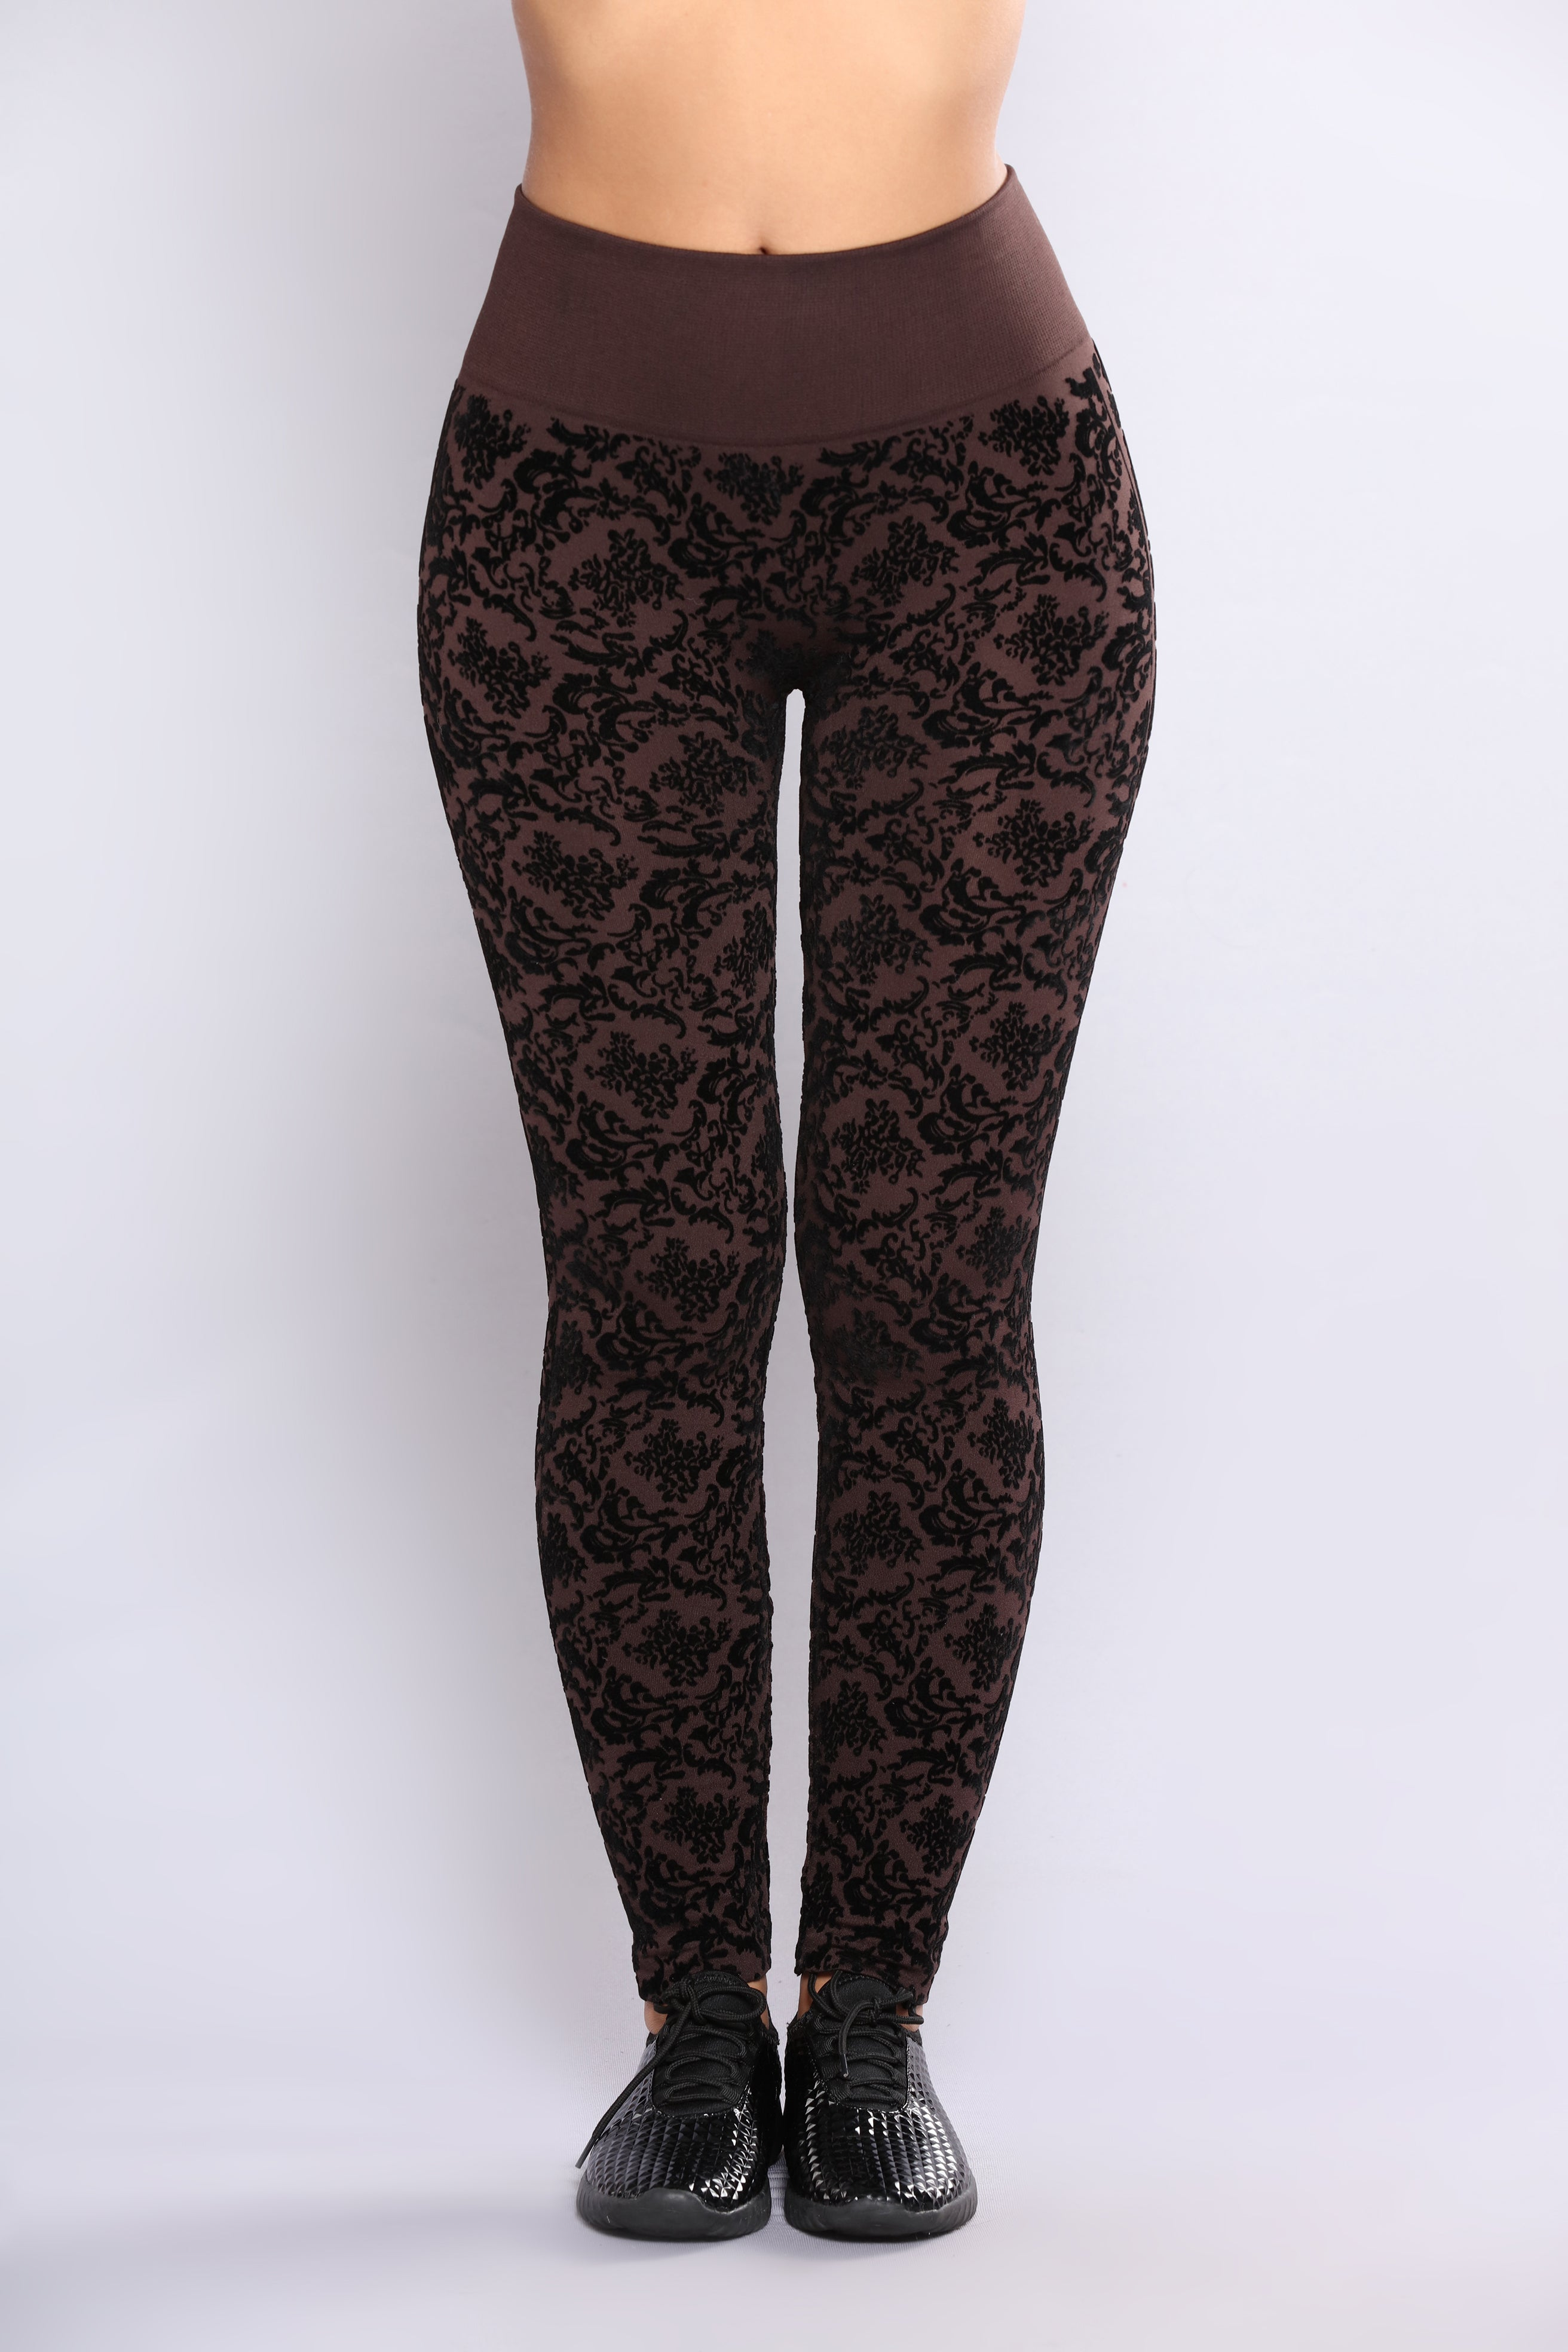 3dff1d972b61 Audrey Fleece Lined Leggings - Chocolate